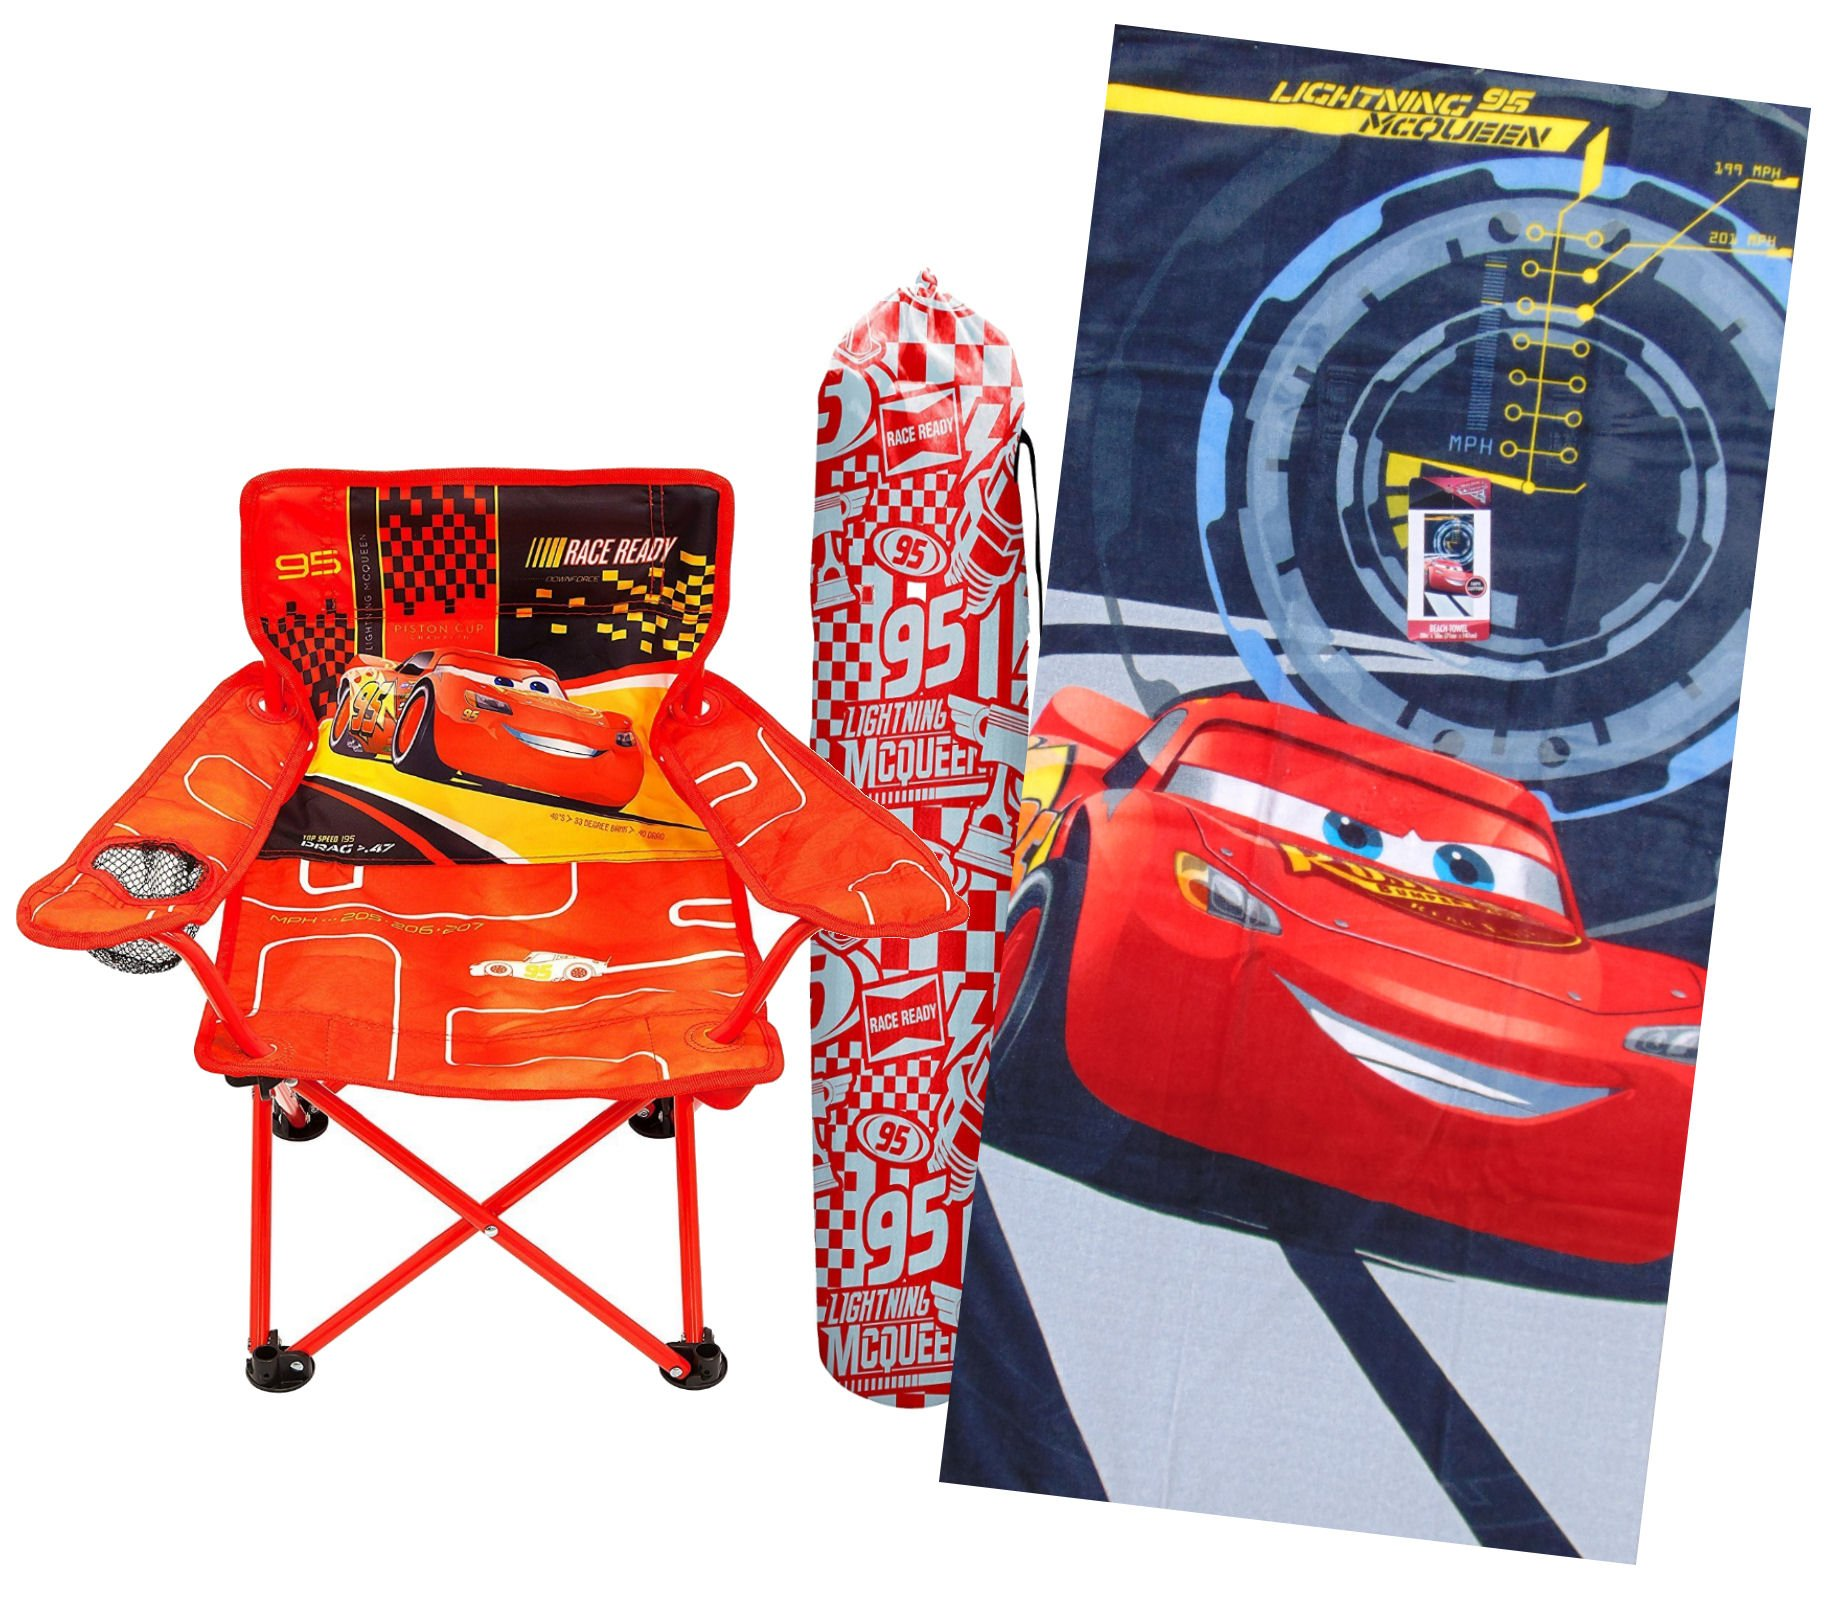 Galleon - Cars 3 Fold N Go Chair And Lightning McQueen Beach Towel Bundle Of Two Items  sc 1 st  Galleon.ph & Galleon - Cars 3 Fold N Go Chair And Lightning McQueen Beach Towel ...